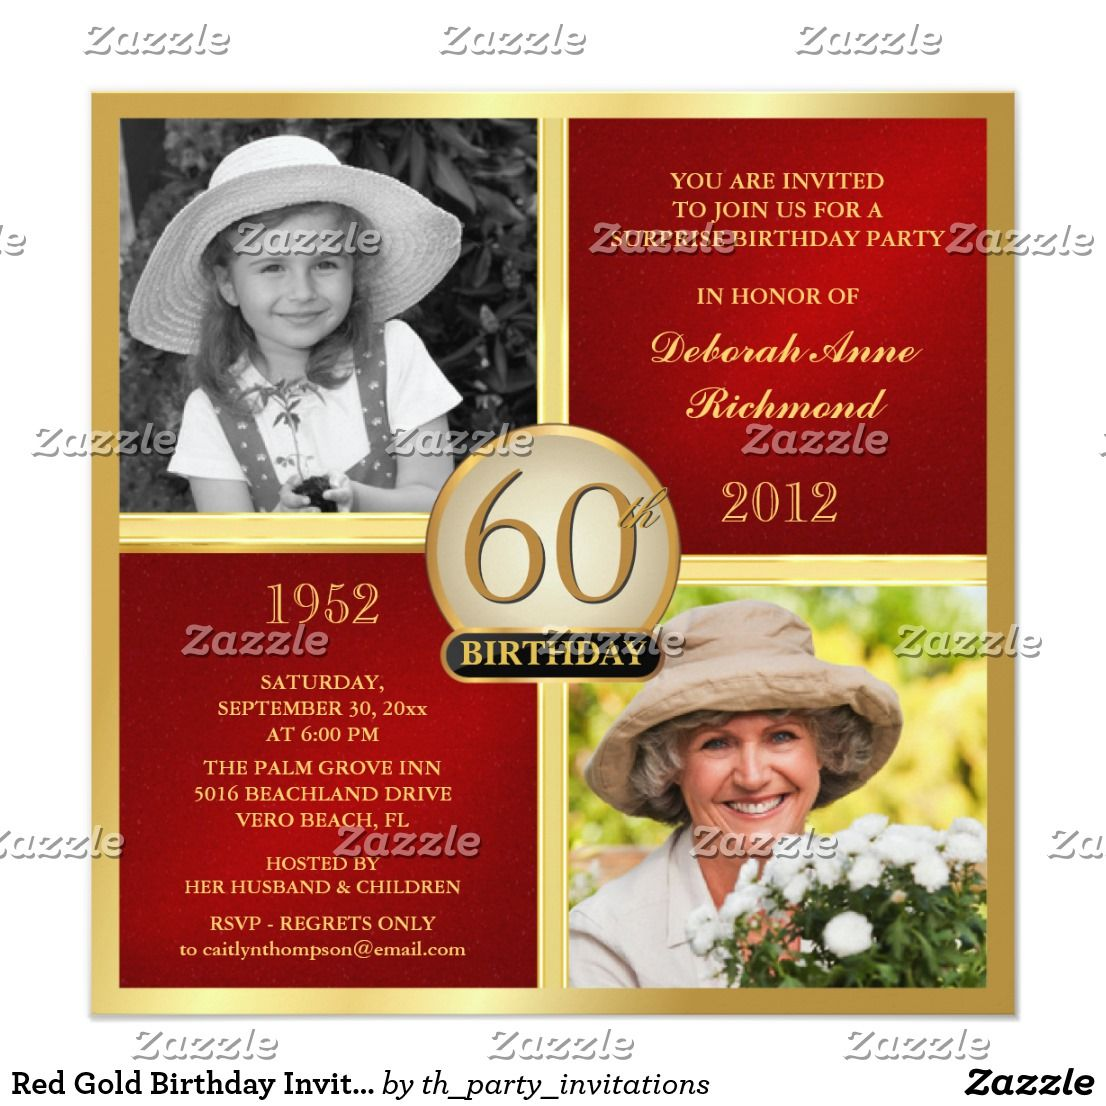 Red Gold Birthday Invitations Then & Now 2 Photos | Pinterest ...